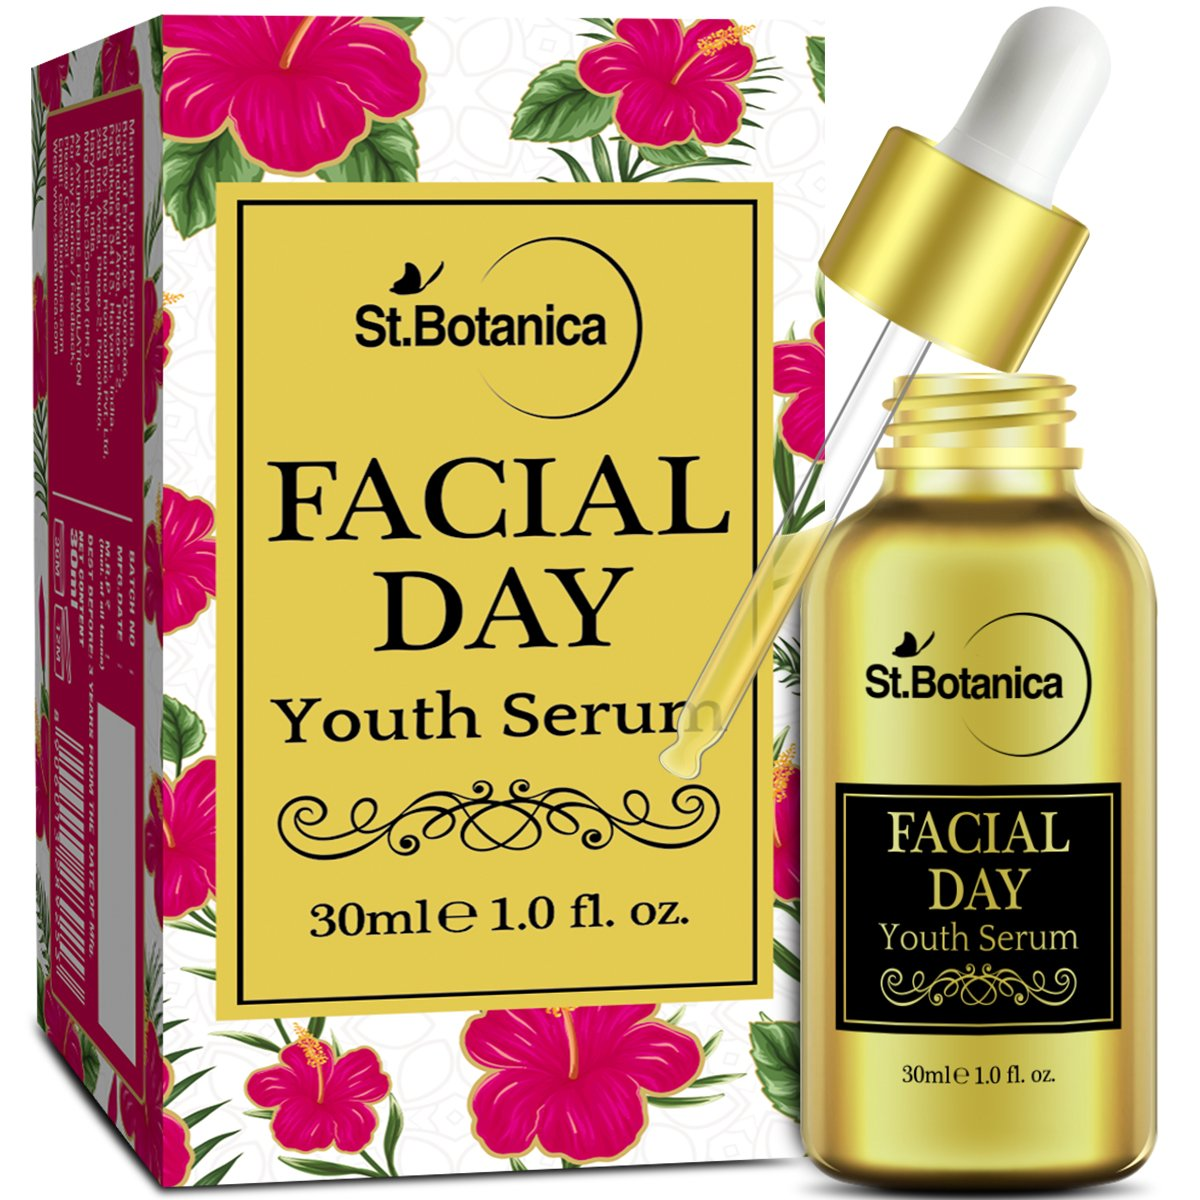 StBotanica Facial Day Youth Serum - 30ml - with Natural SPF